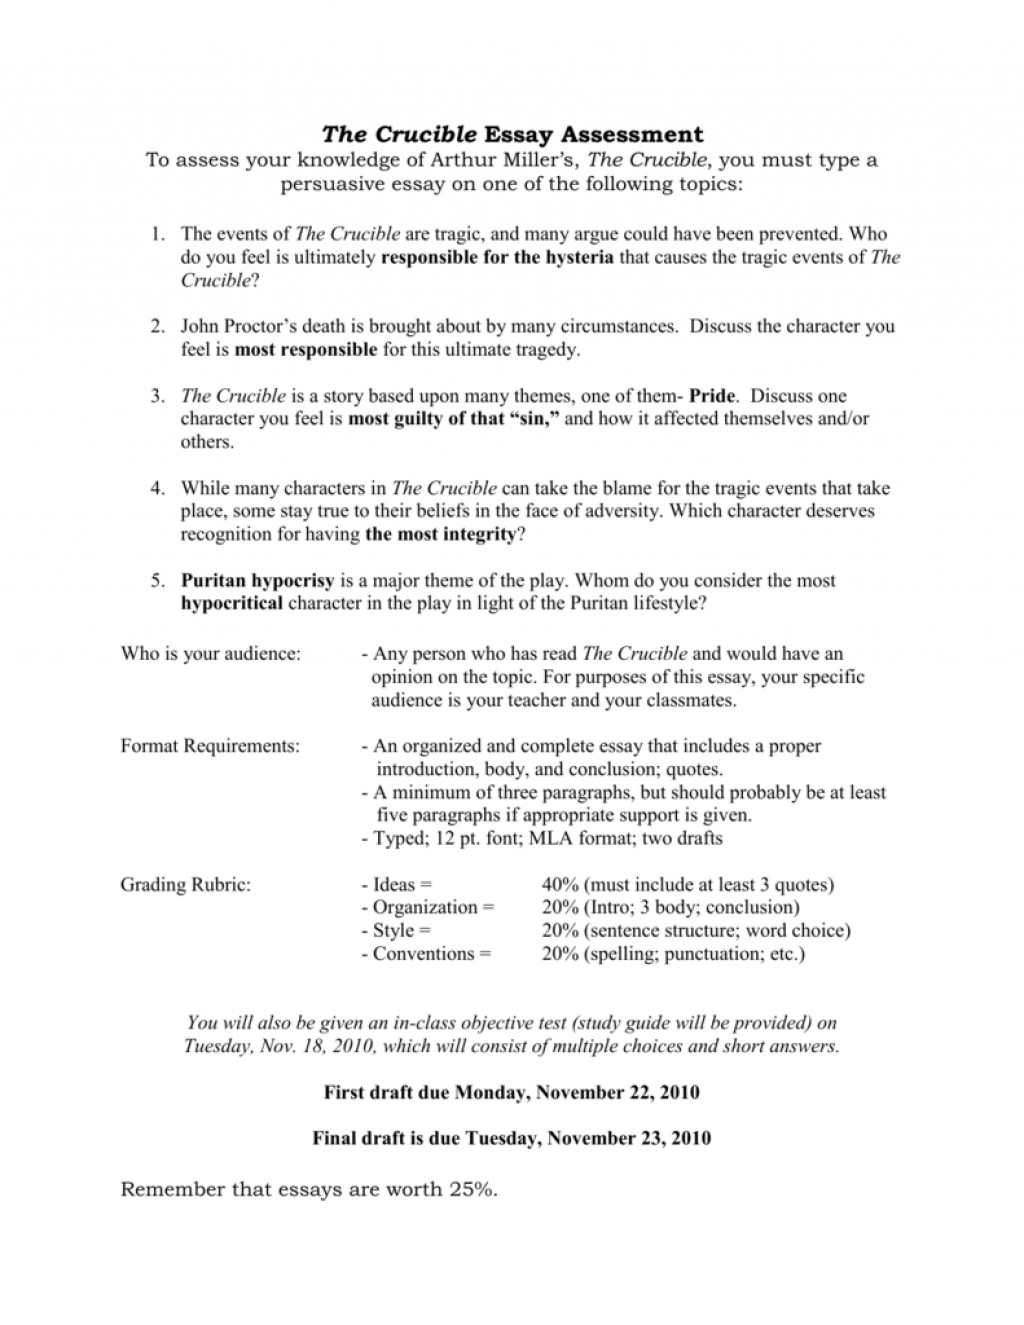 004 008019664 1 Essay On The Crucible Phenomenal And Red Scare Reputation Questions For Act Large